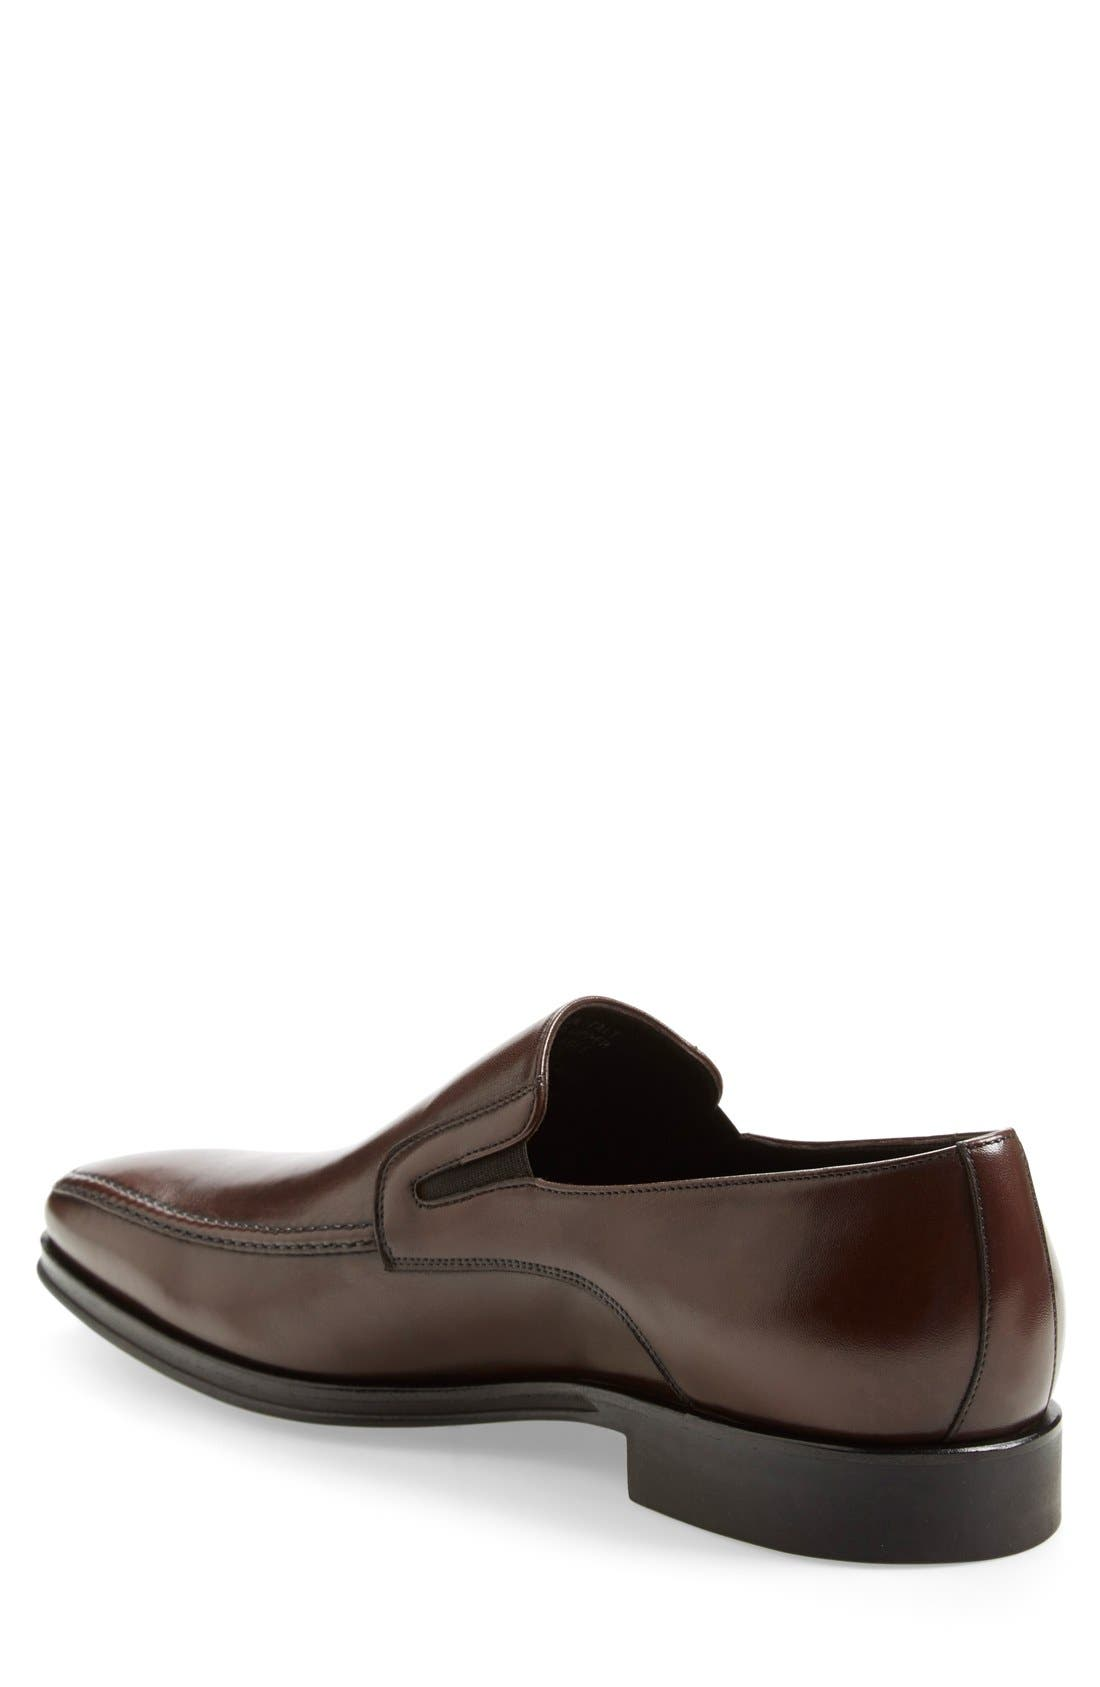 Lucca Nappa Leather Loafer,                             Alternate thumbnail 2, color,                             BROWN